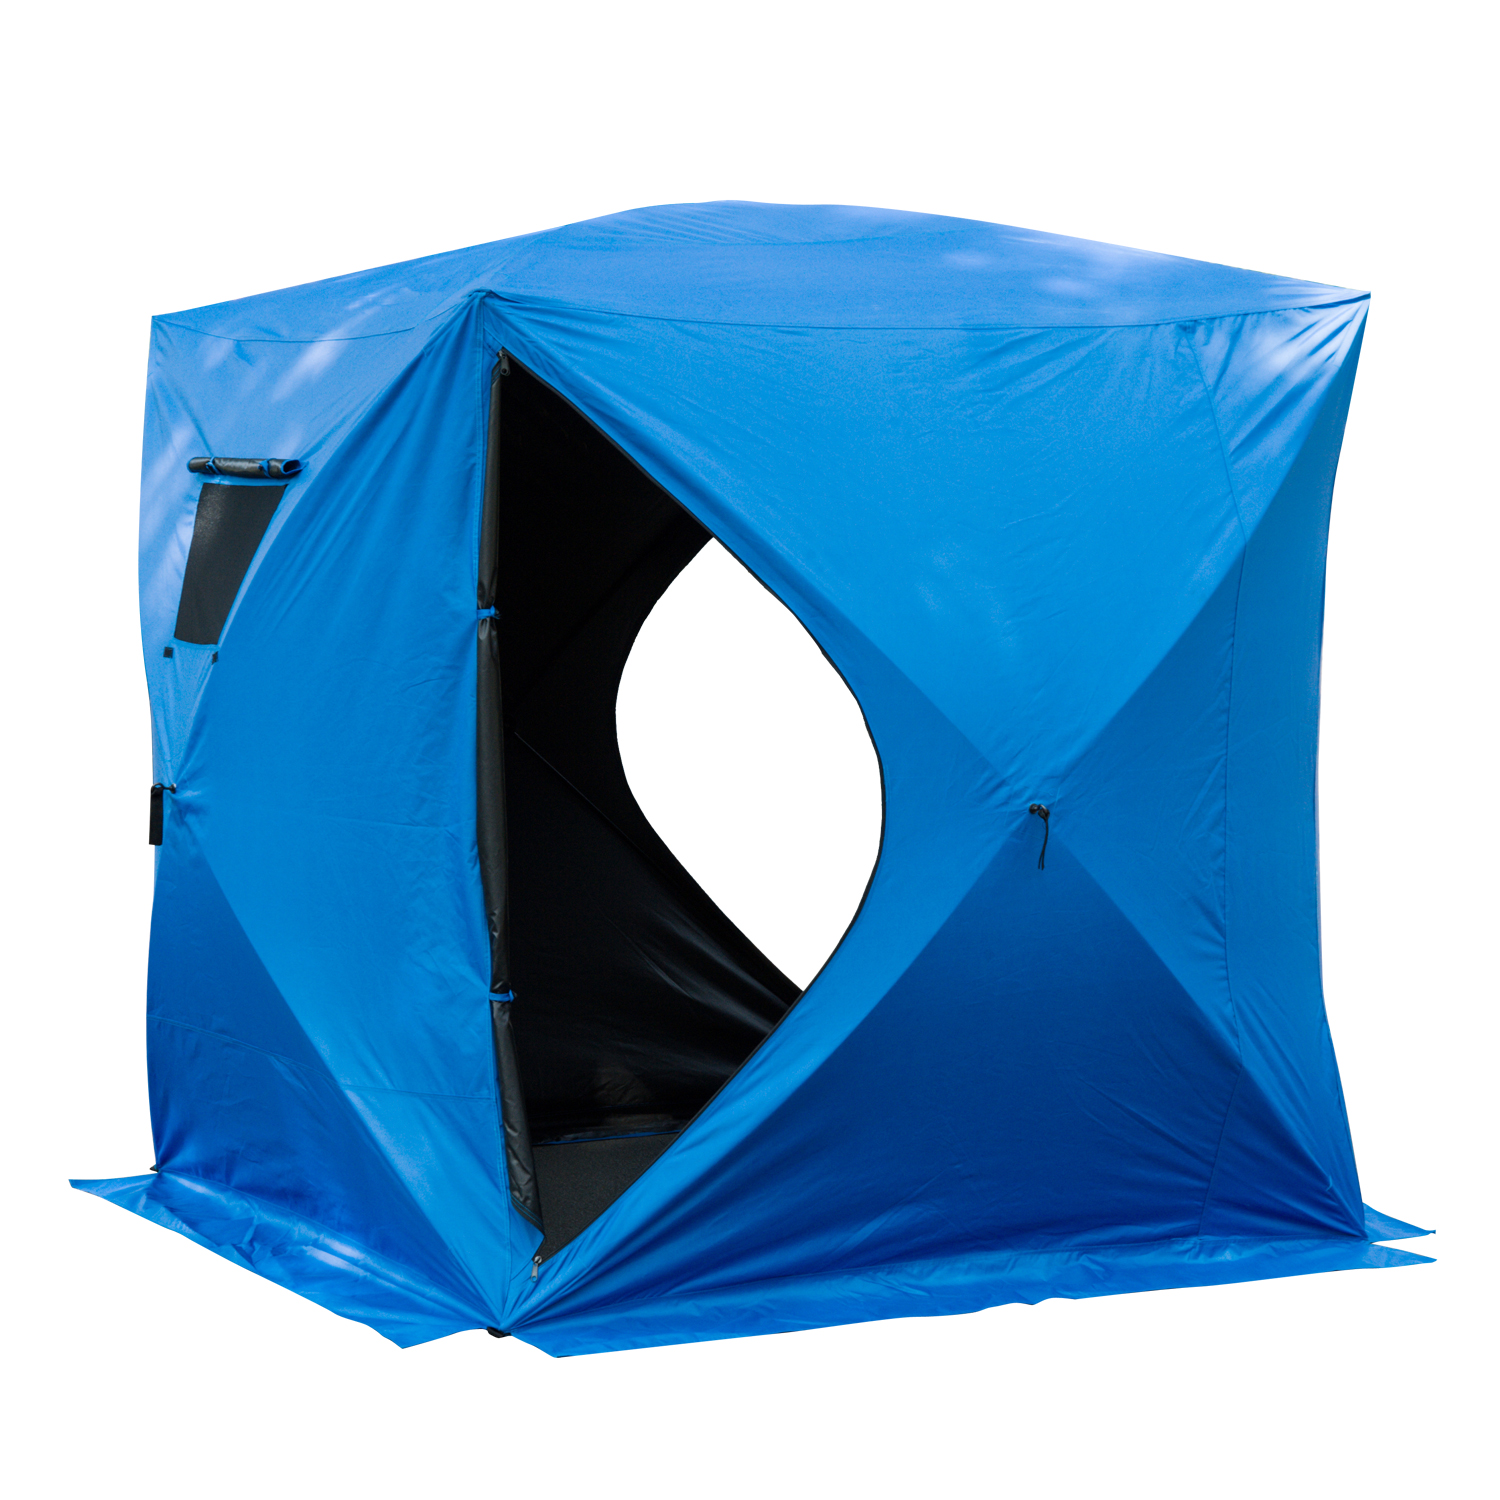 Outsunny Insulated Pop Up Portable Ice Fishing Shelter Tent (Single (2 4 Person)) by Aosom LLC